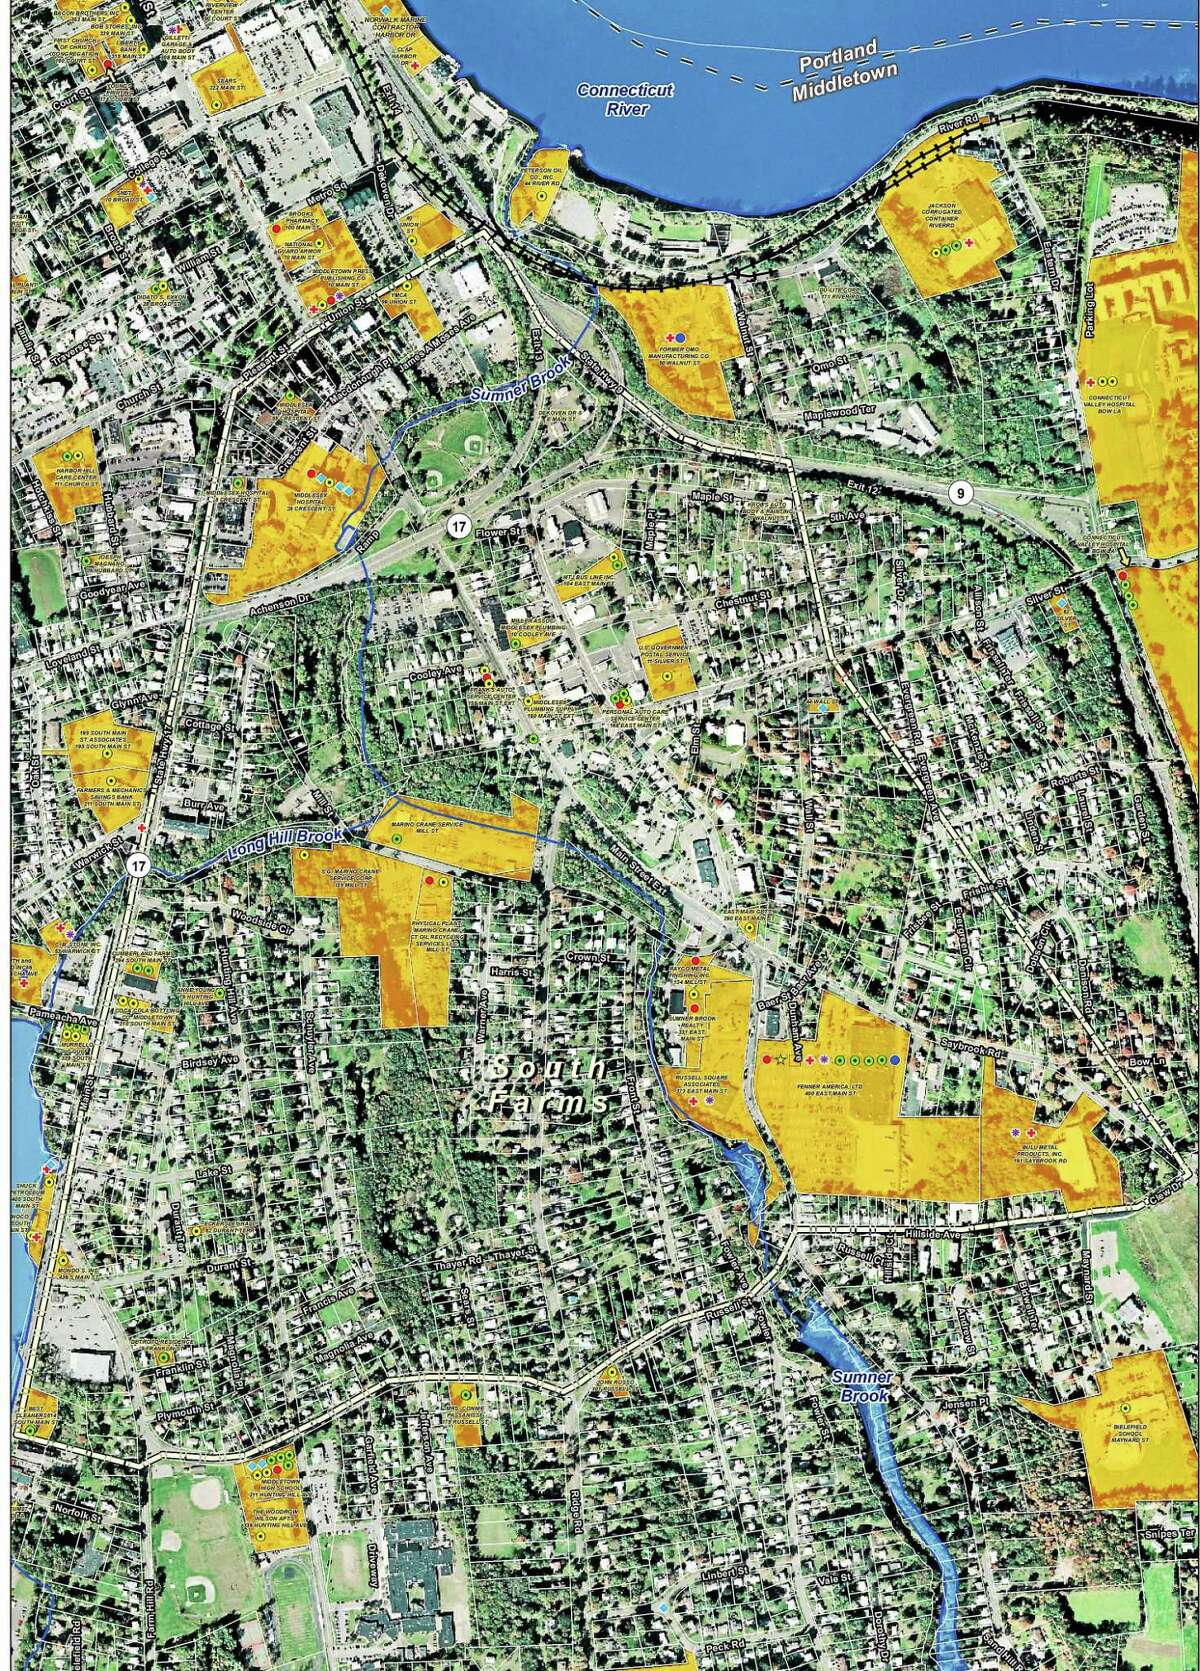 A map submitted with the grant listing the potential brownfield properties in Middletown.